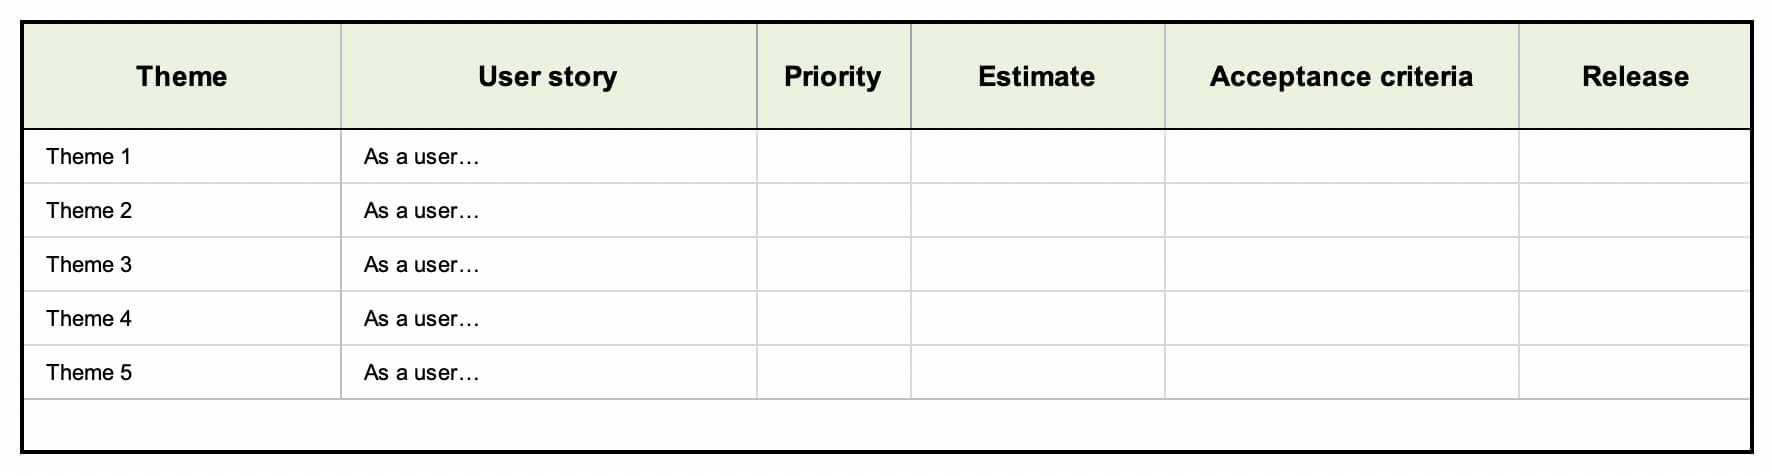 User Story Template Examples For Product Managers   Aha! regarding User Story Template Word